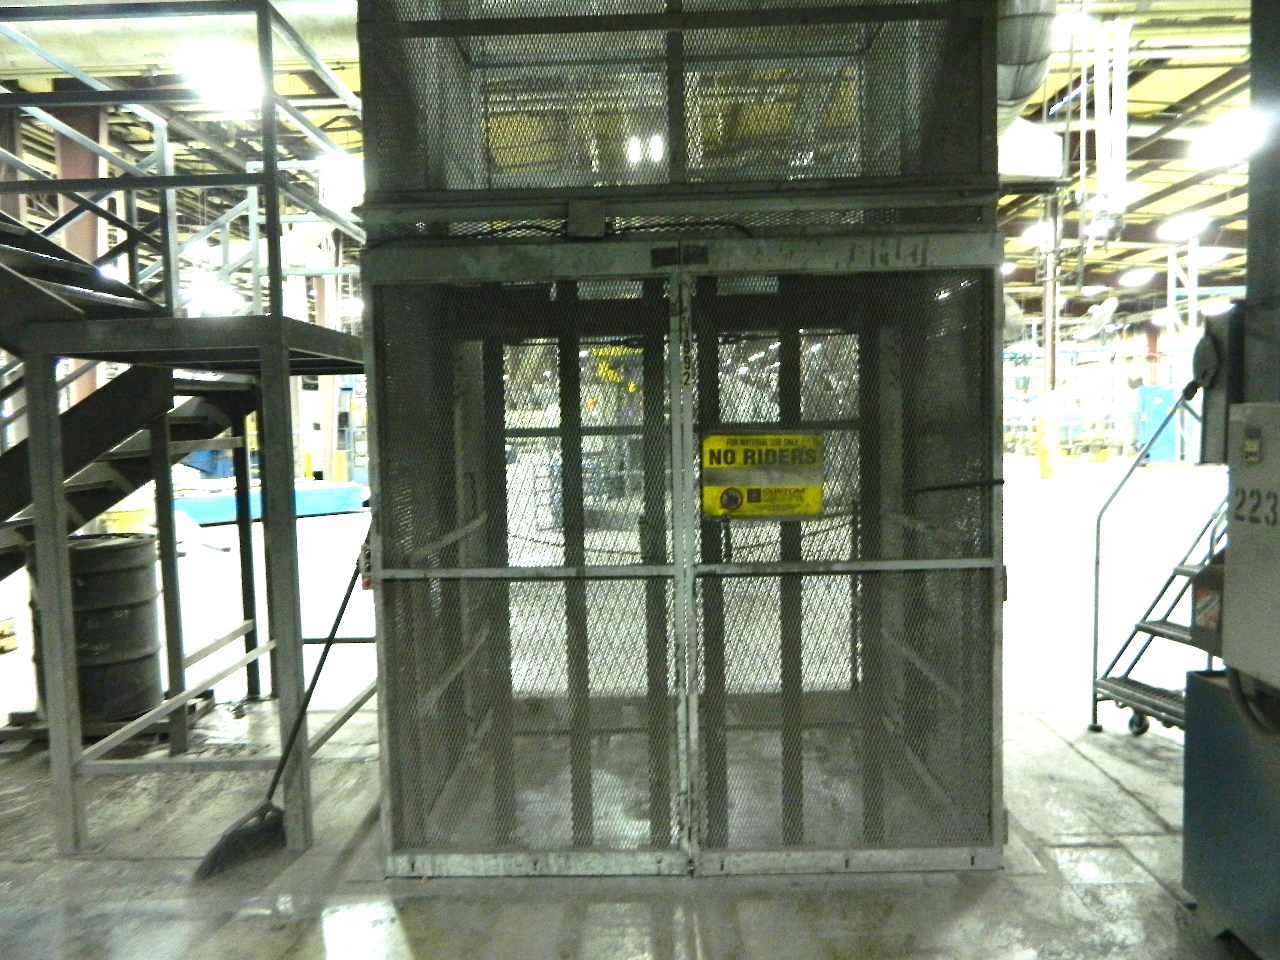 Cip vertical material lift mezzanine elevator 2 story 4 for 1 story elevator